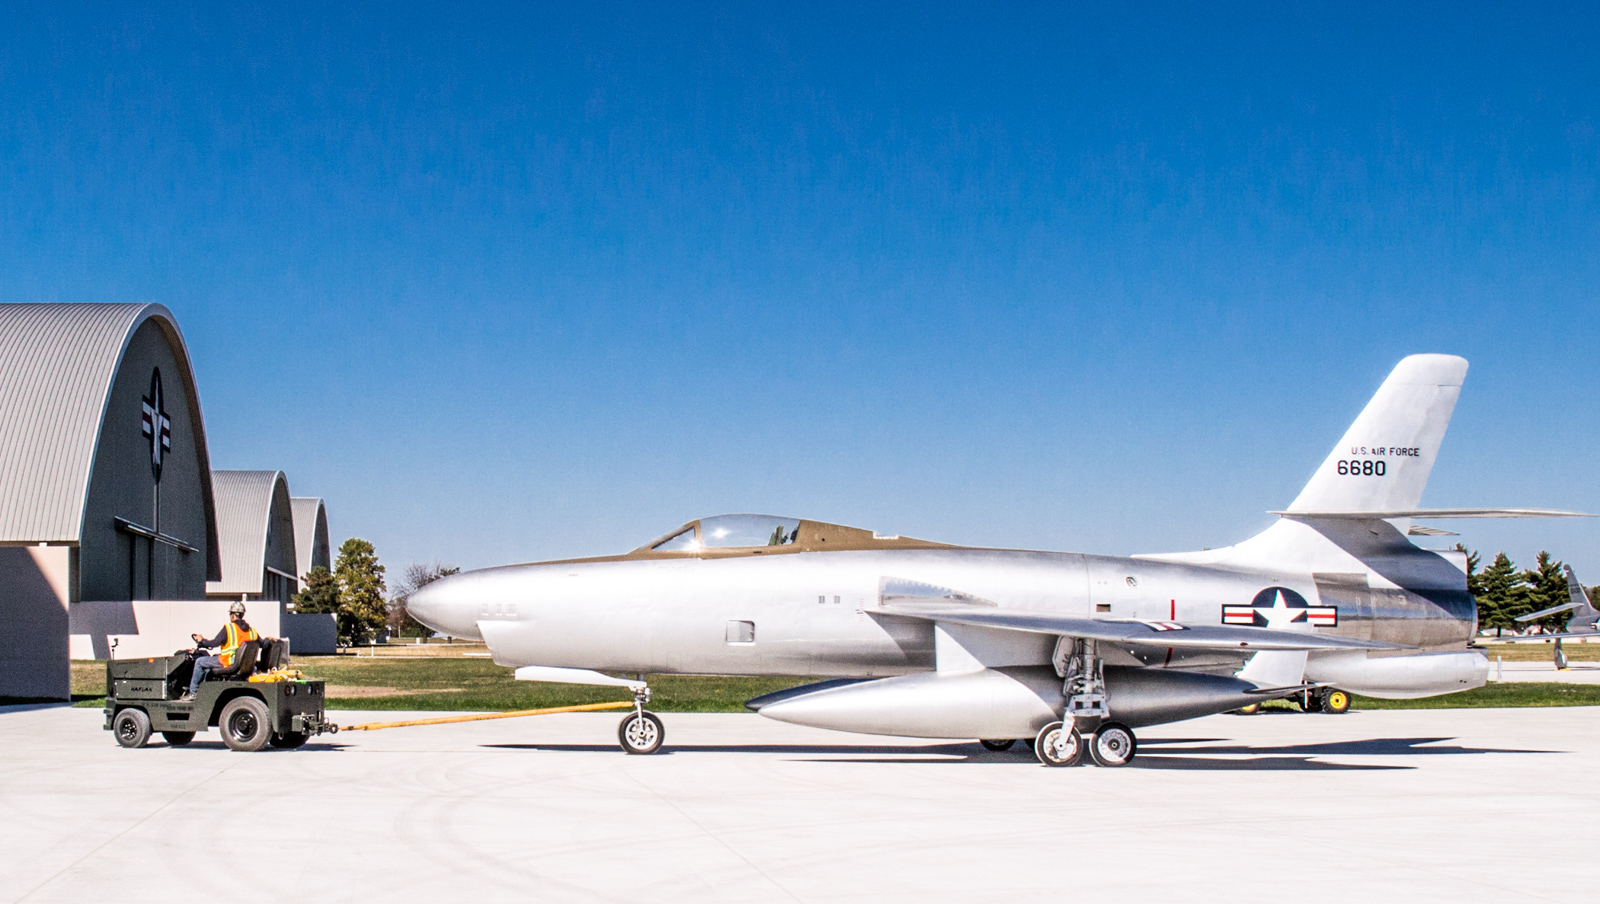 Restoration staff move the Republic XF-91 Thunderceptor into the new fourth building at the National Museum of the U.S. Air Force on Oct. 8, 2015. (U.S. Air Force photo by Ken LaRock)